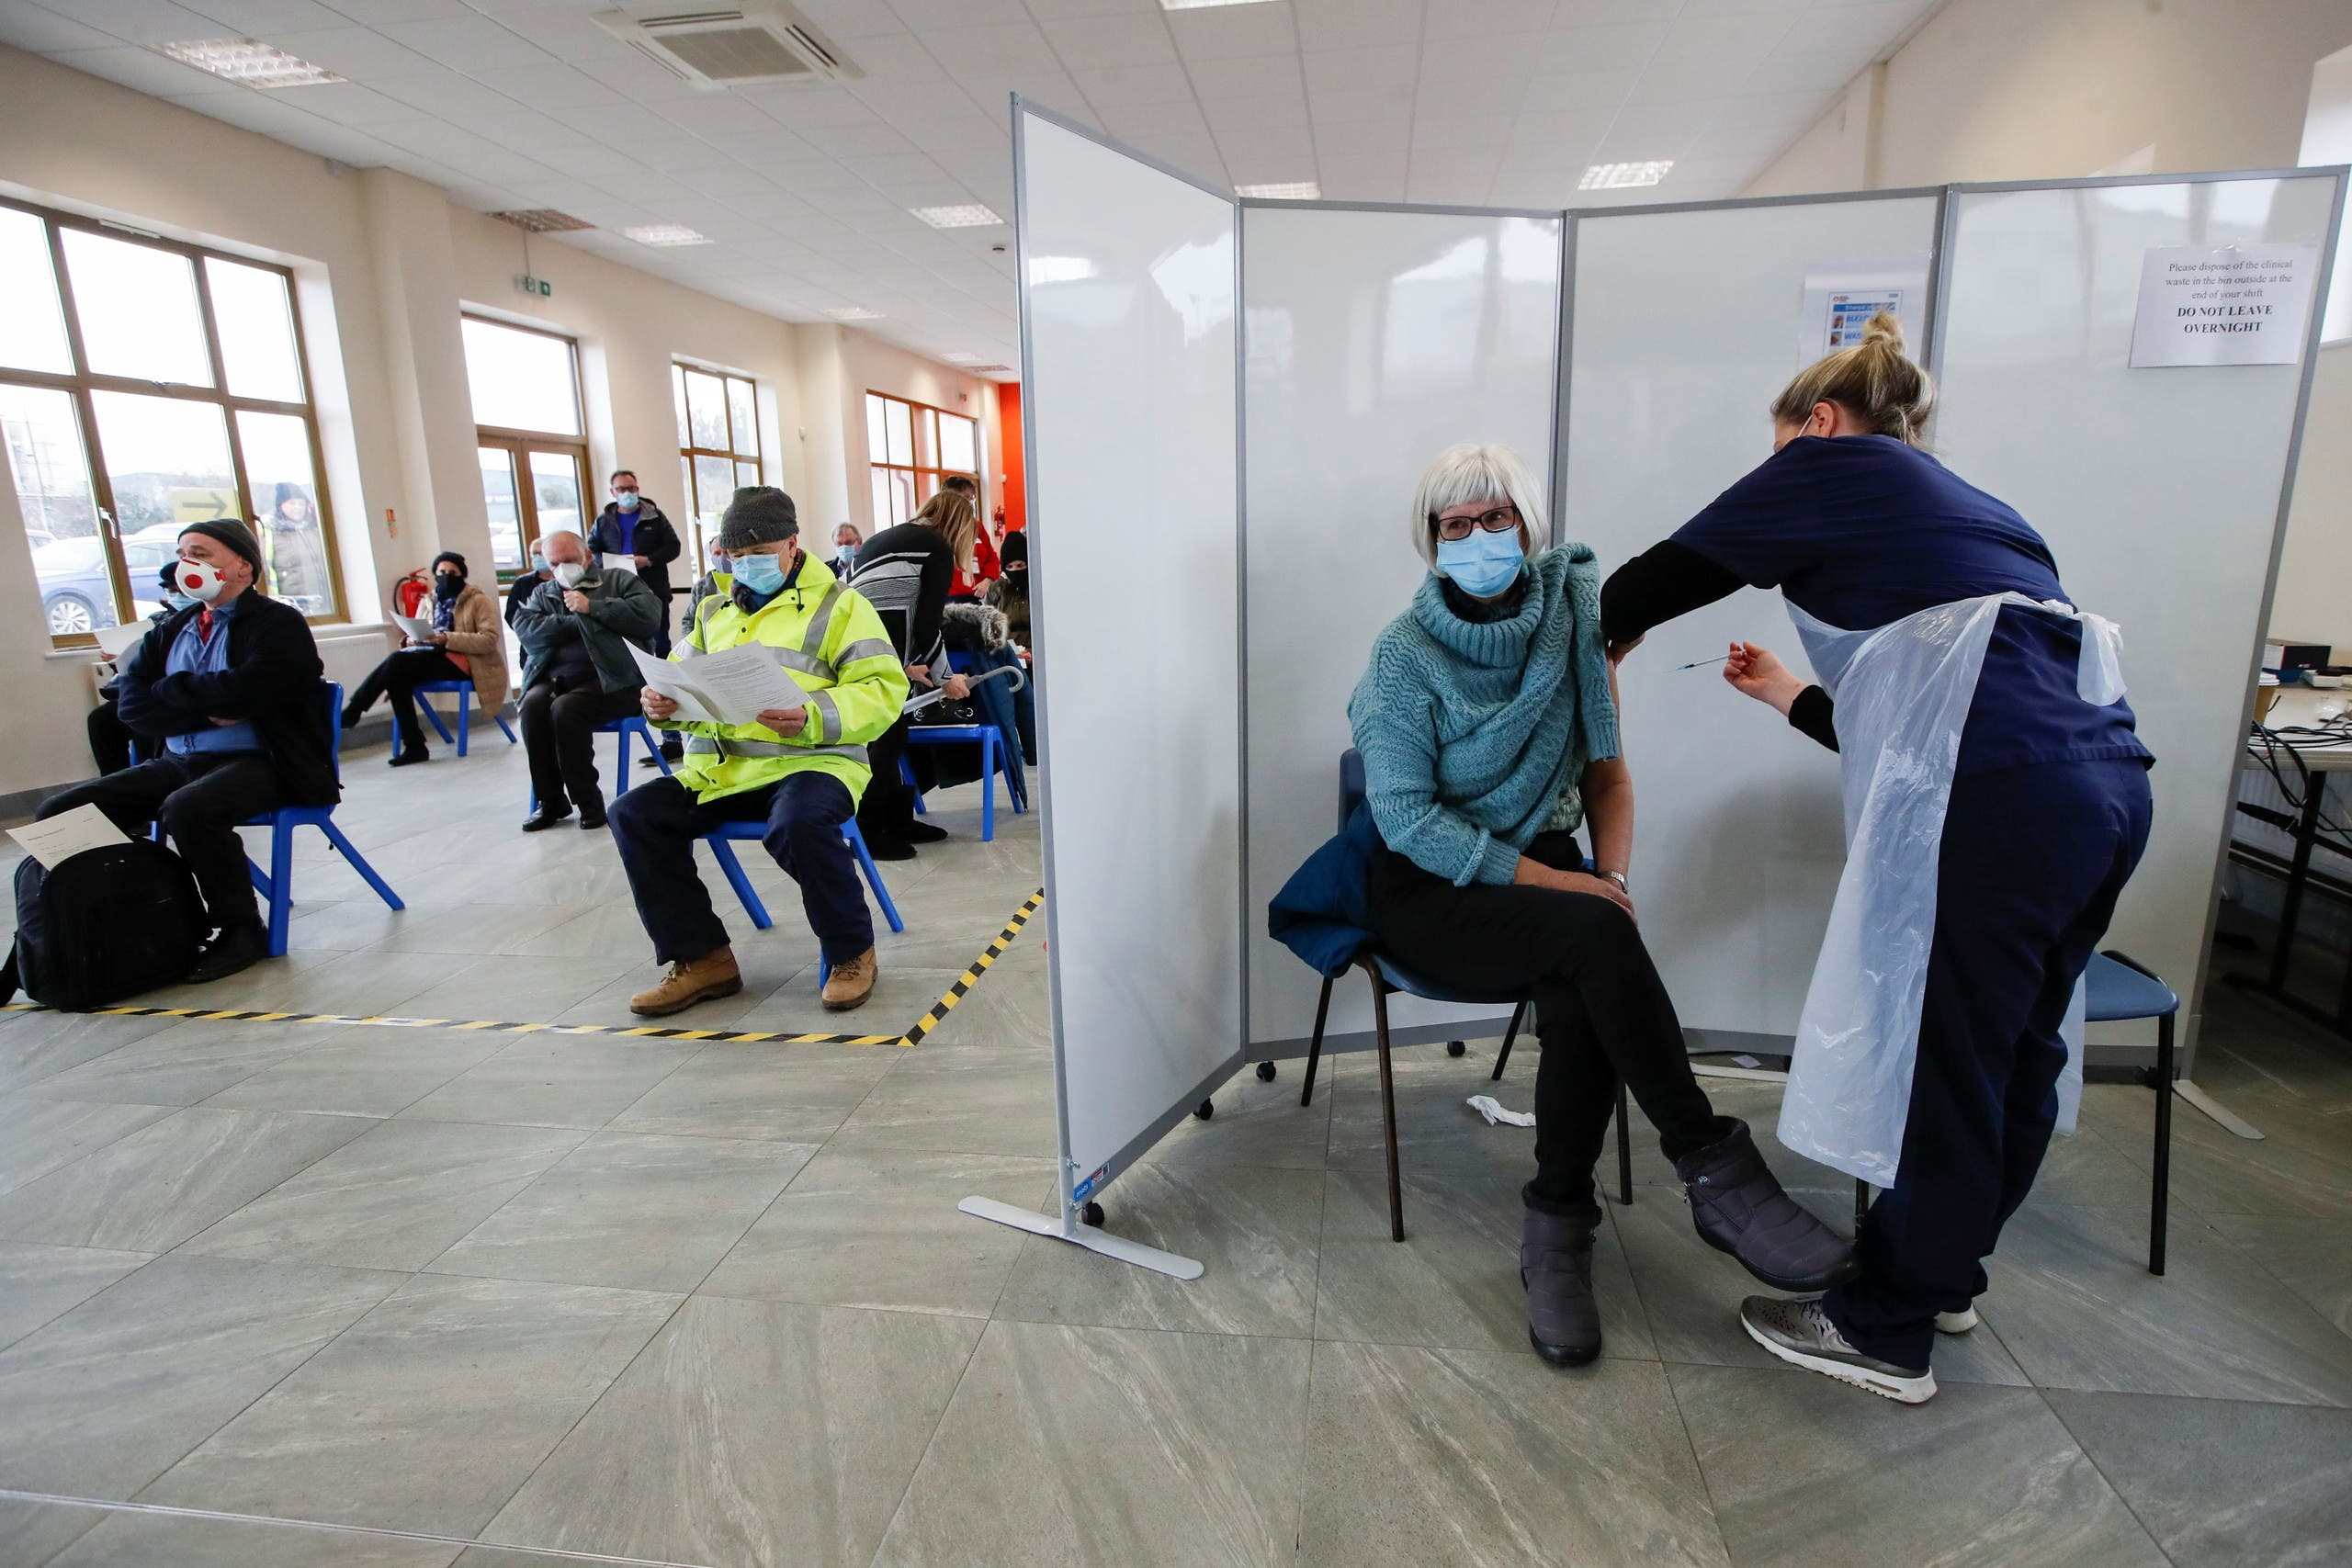 A woman receives a dose of a COVID-19 vaccine at the vaccination center at The Guru Nanak Temple, amid the coronavirus outbreak in Bedford, Britain, February 10, 2021. (Reuters/Paul Childs)